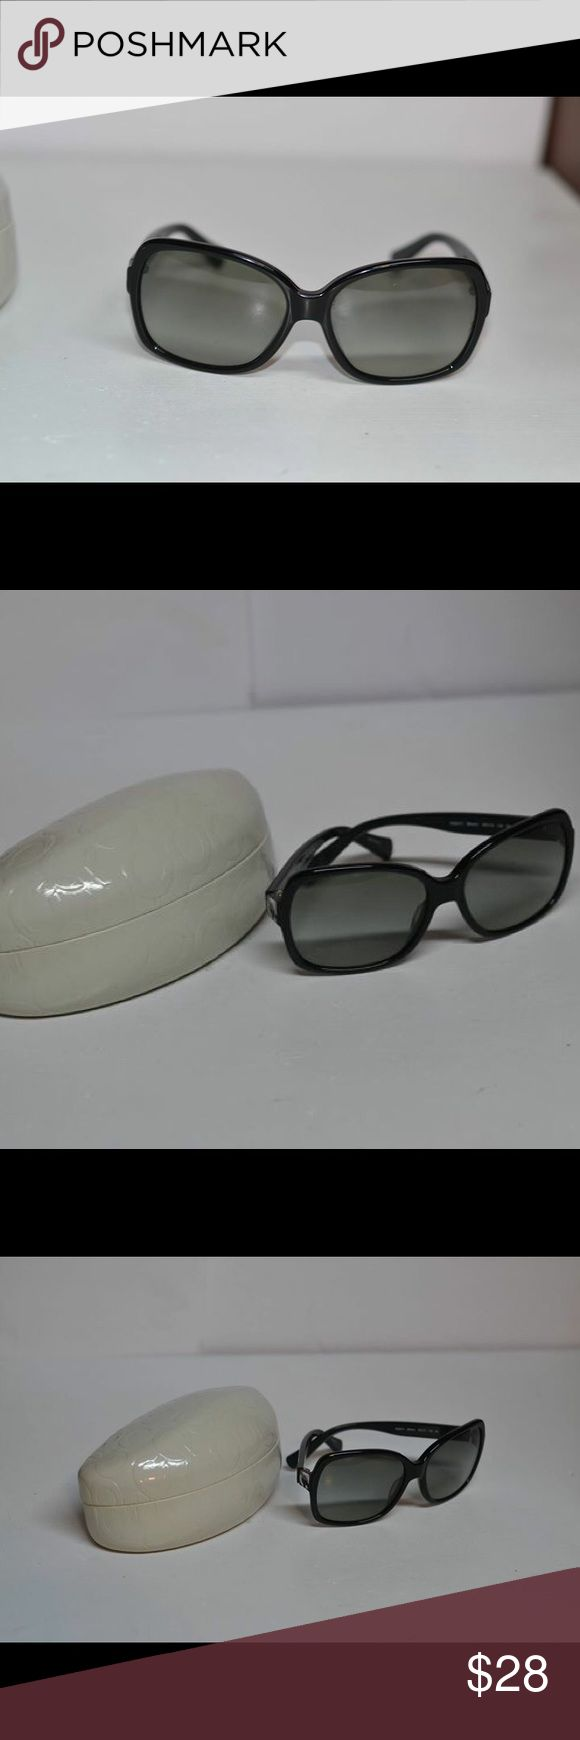 Coach Sunglasses with case Nice Pair of Authentic Coach Sunglasses with Case Glass in Very Good Condition Coach Accessories Sunglasses